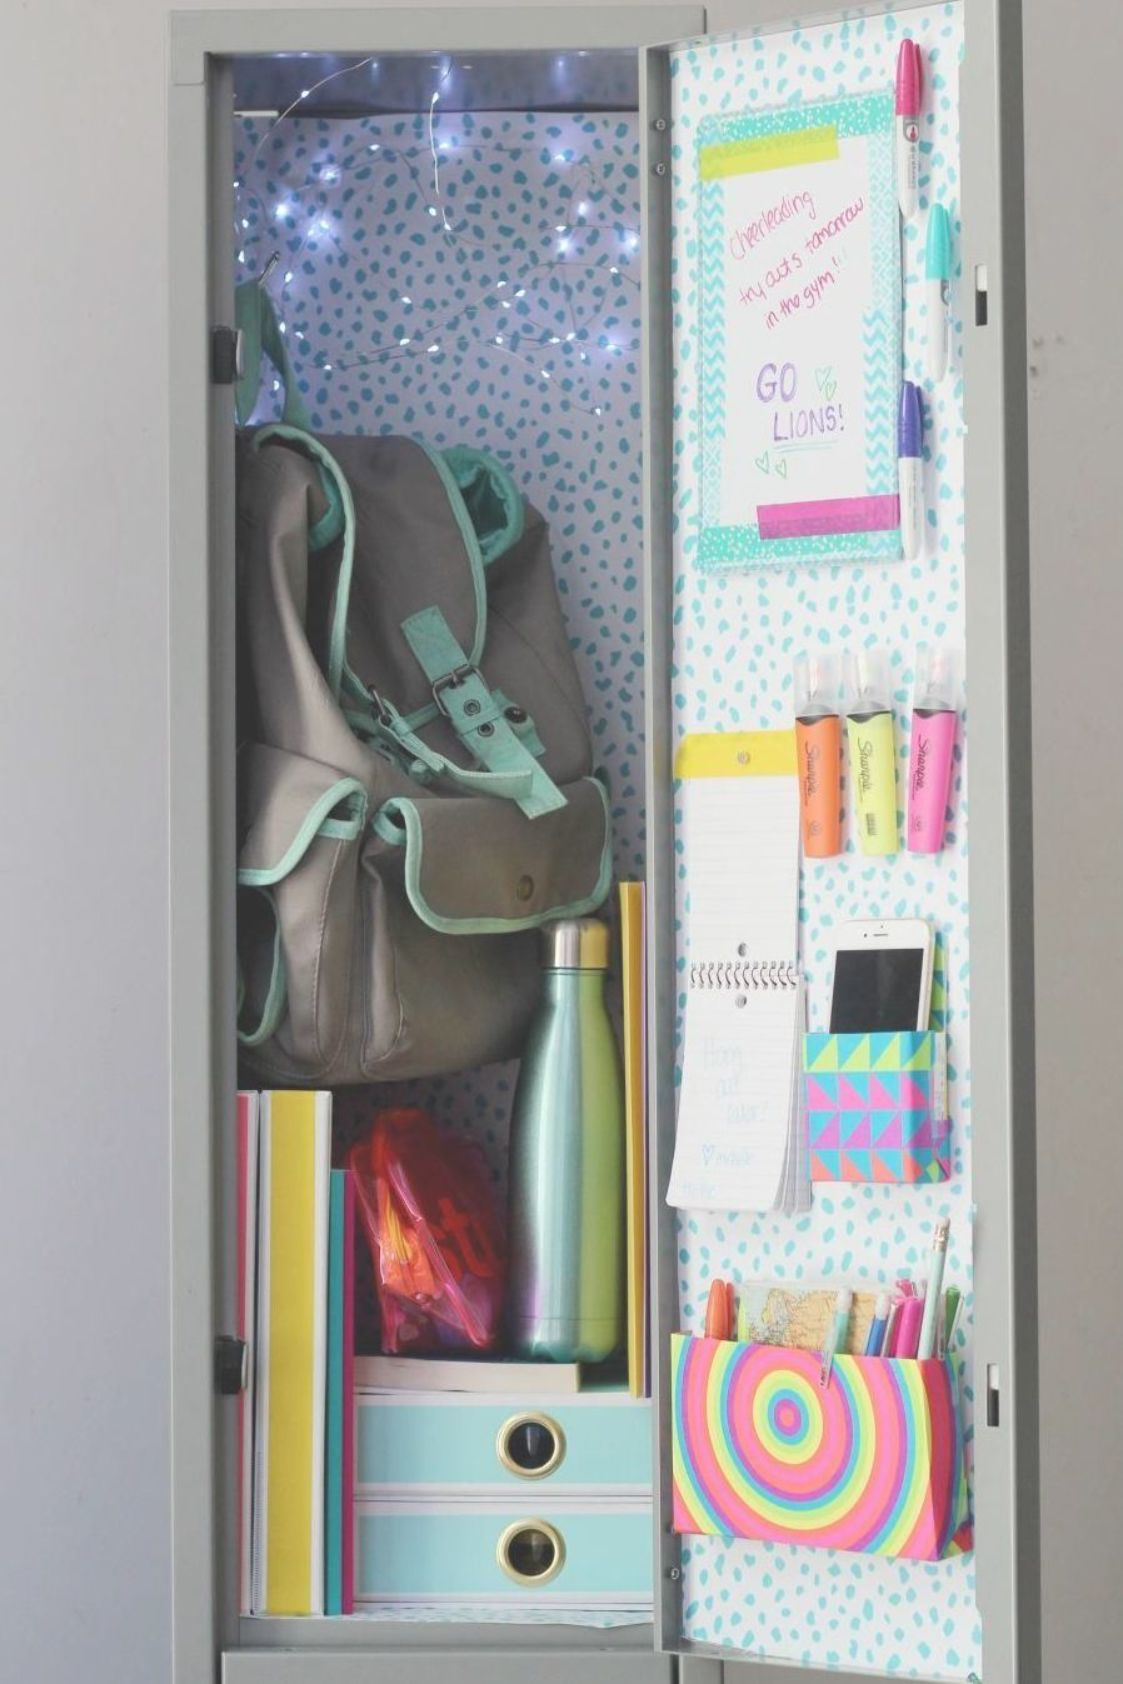 Pin By Janeth Flores On Trabajo Escolares In 2020 School Locker Decorations School Lockers School Locker Organization